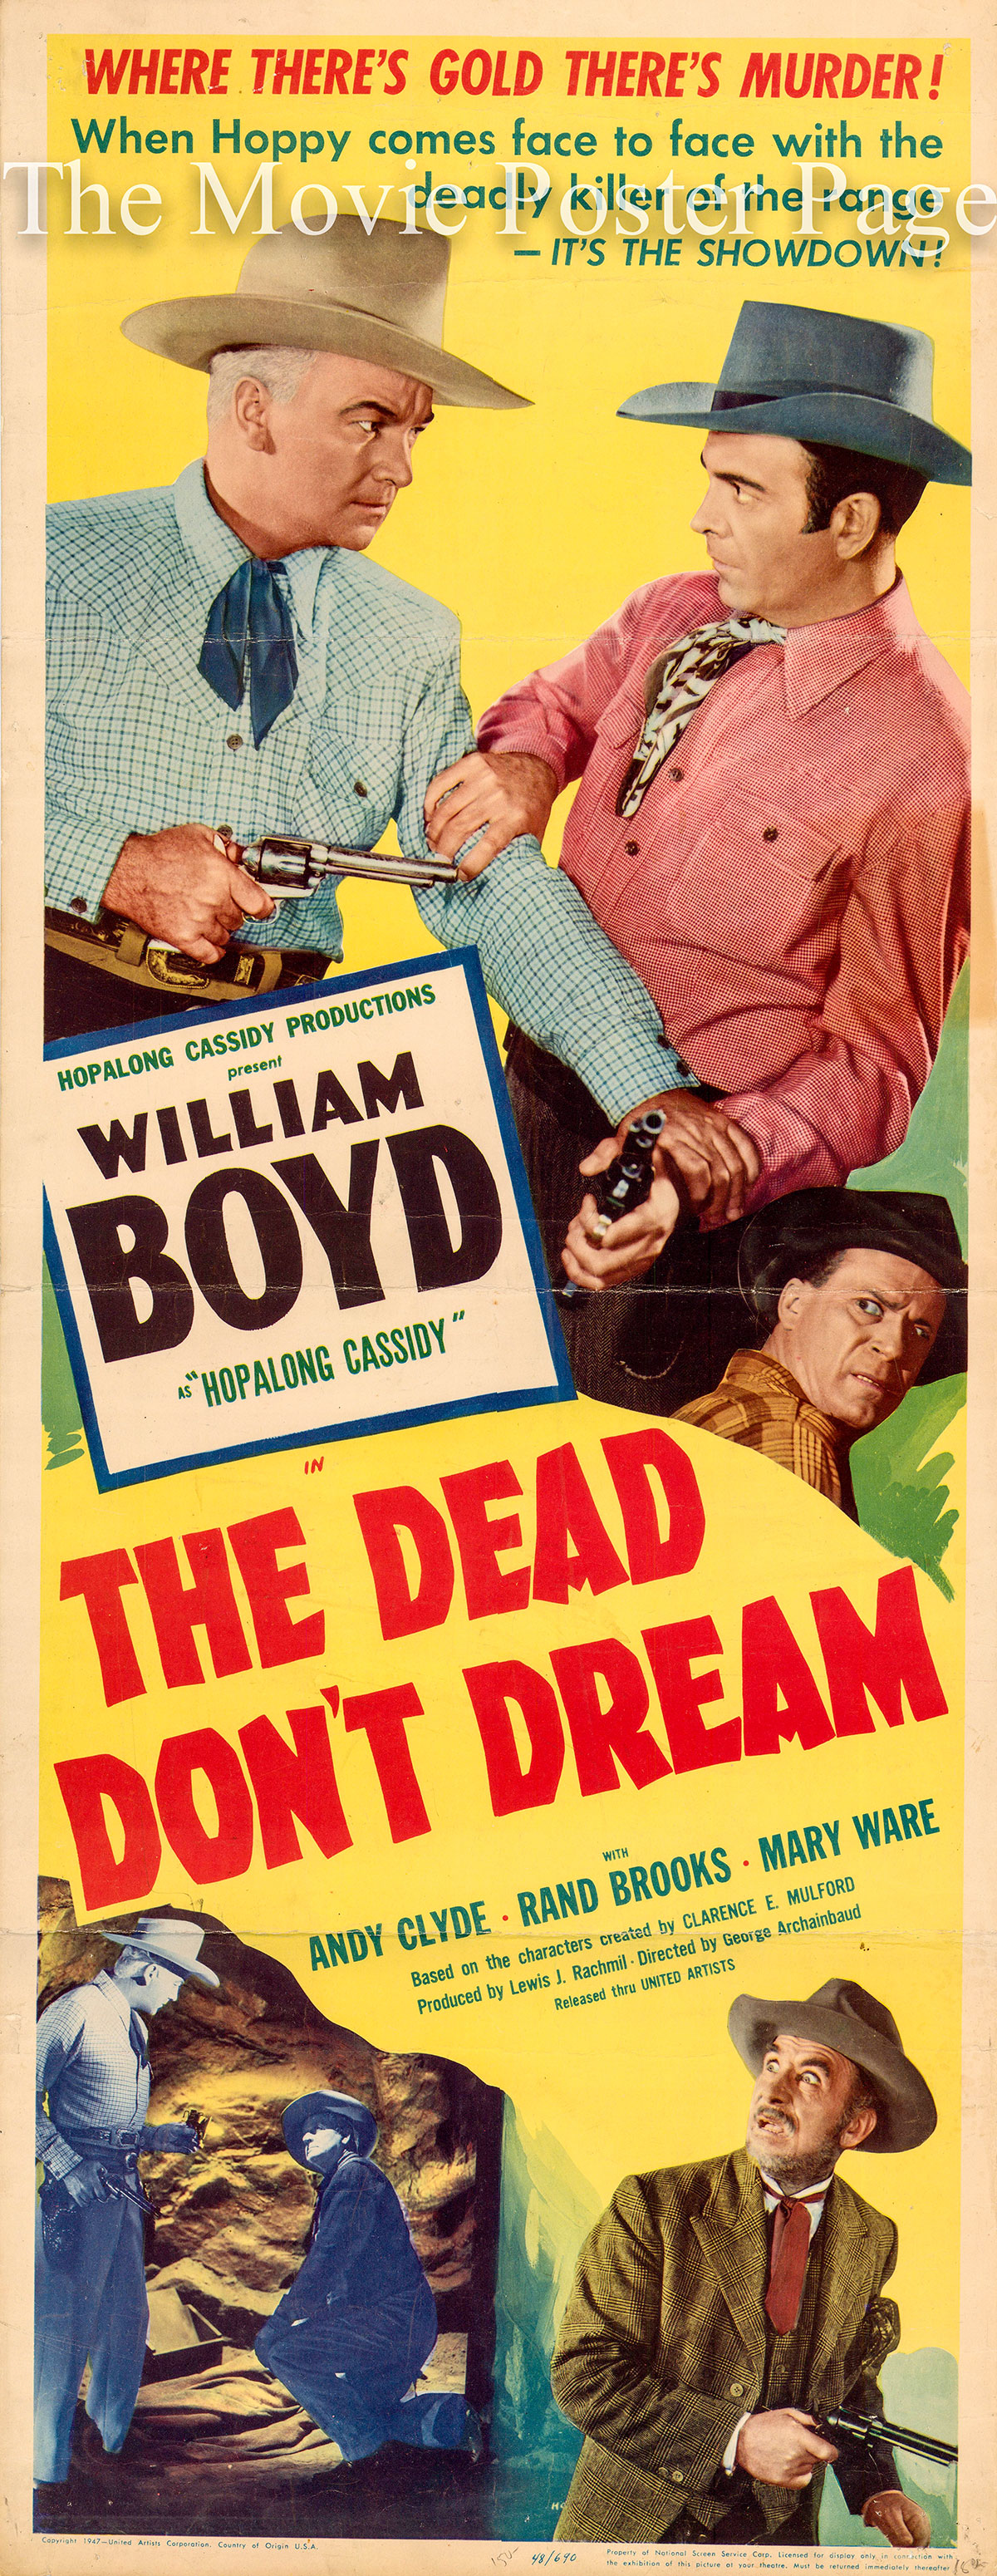 Pictured is the US promotional poster for the 1948 Geroge Archainbaud film The Dead Dont Dream, starring William Boyd as Hopalong Cassidy.